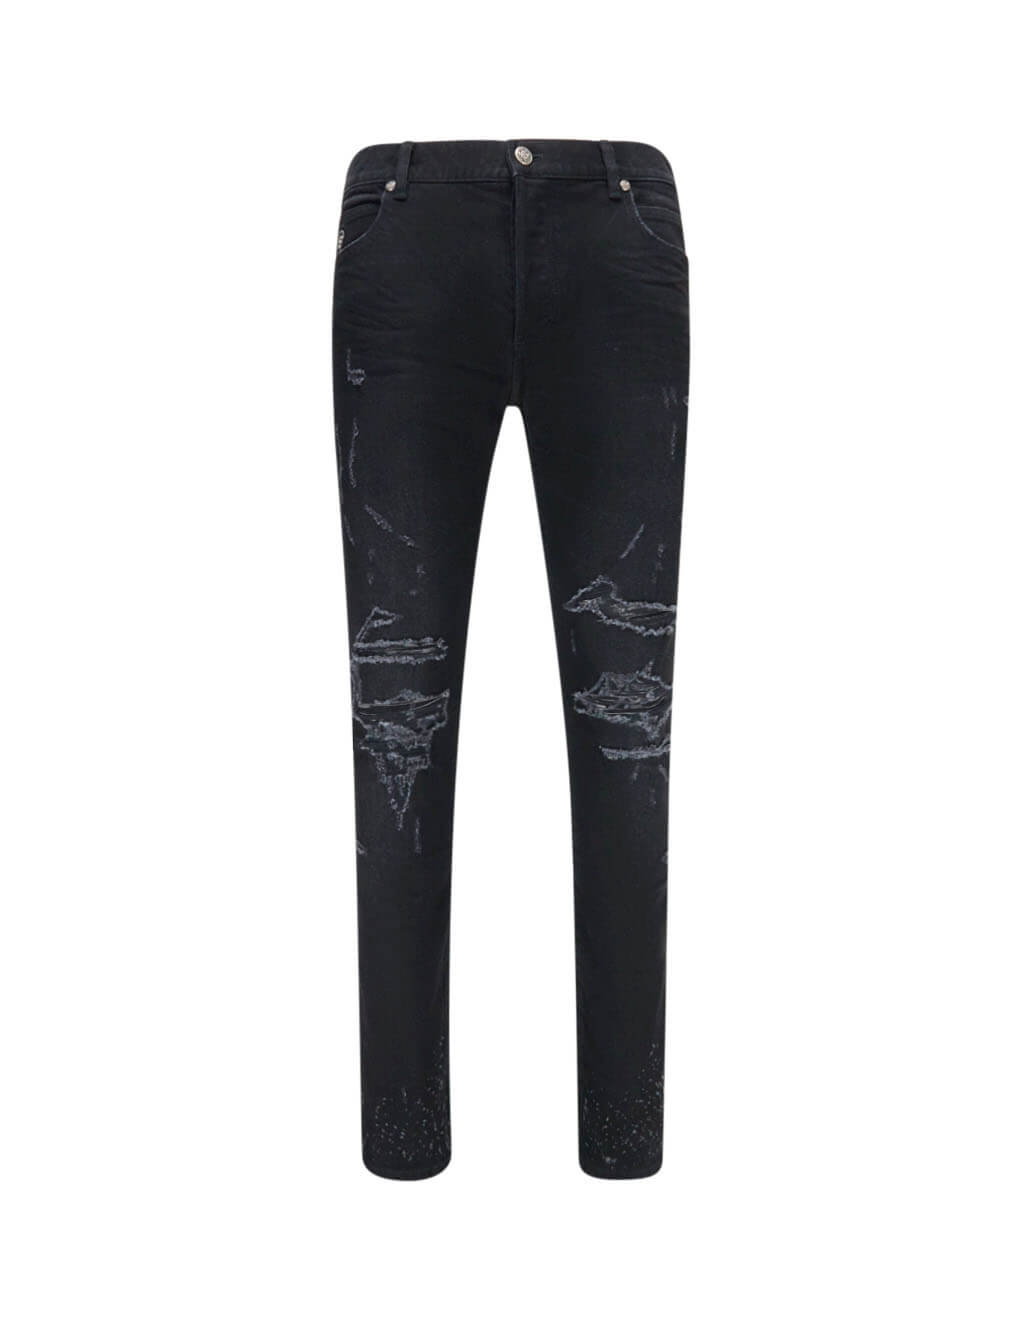 Balmain Men's Giulio Fashion Black Slim Destroyed Jeans TH15230Z0390PA